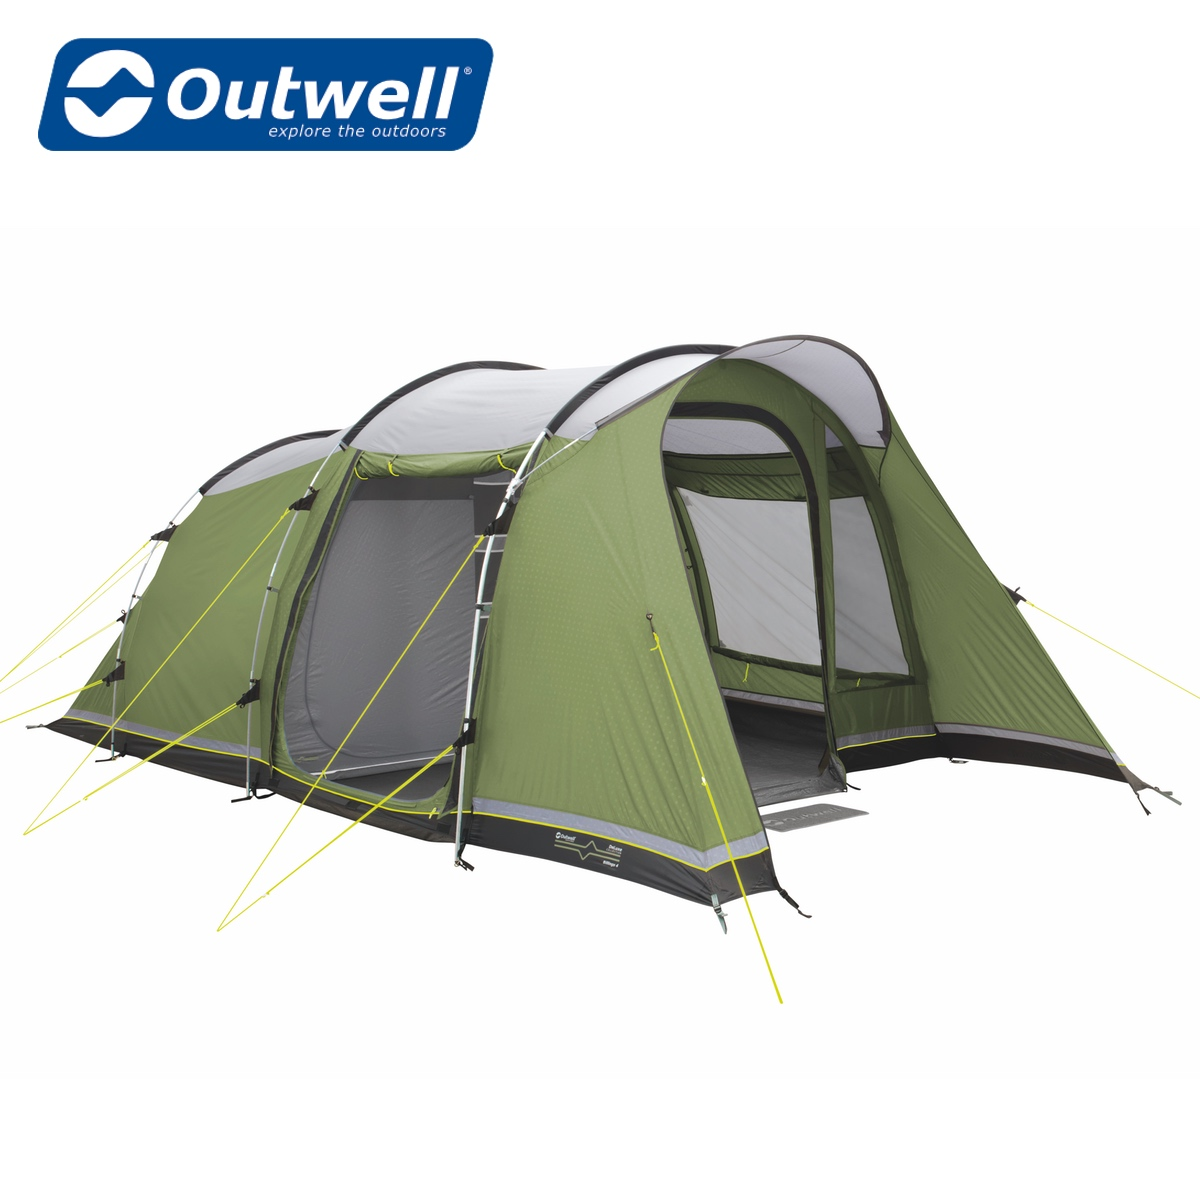 Outwell Pop Up Tent 4 Man Best 2017  sc 1 st  Best Tent 2018 & Outwell Pop Up Tent 4 Man - Best Tent 2018